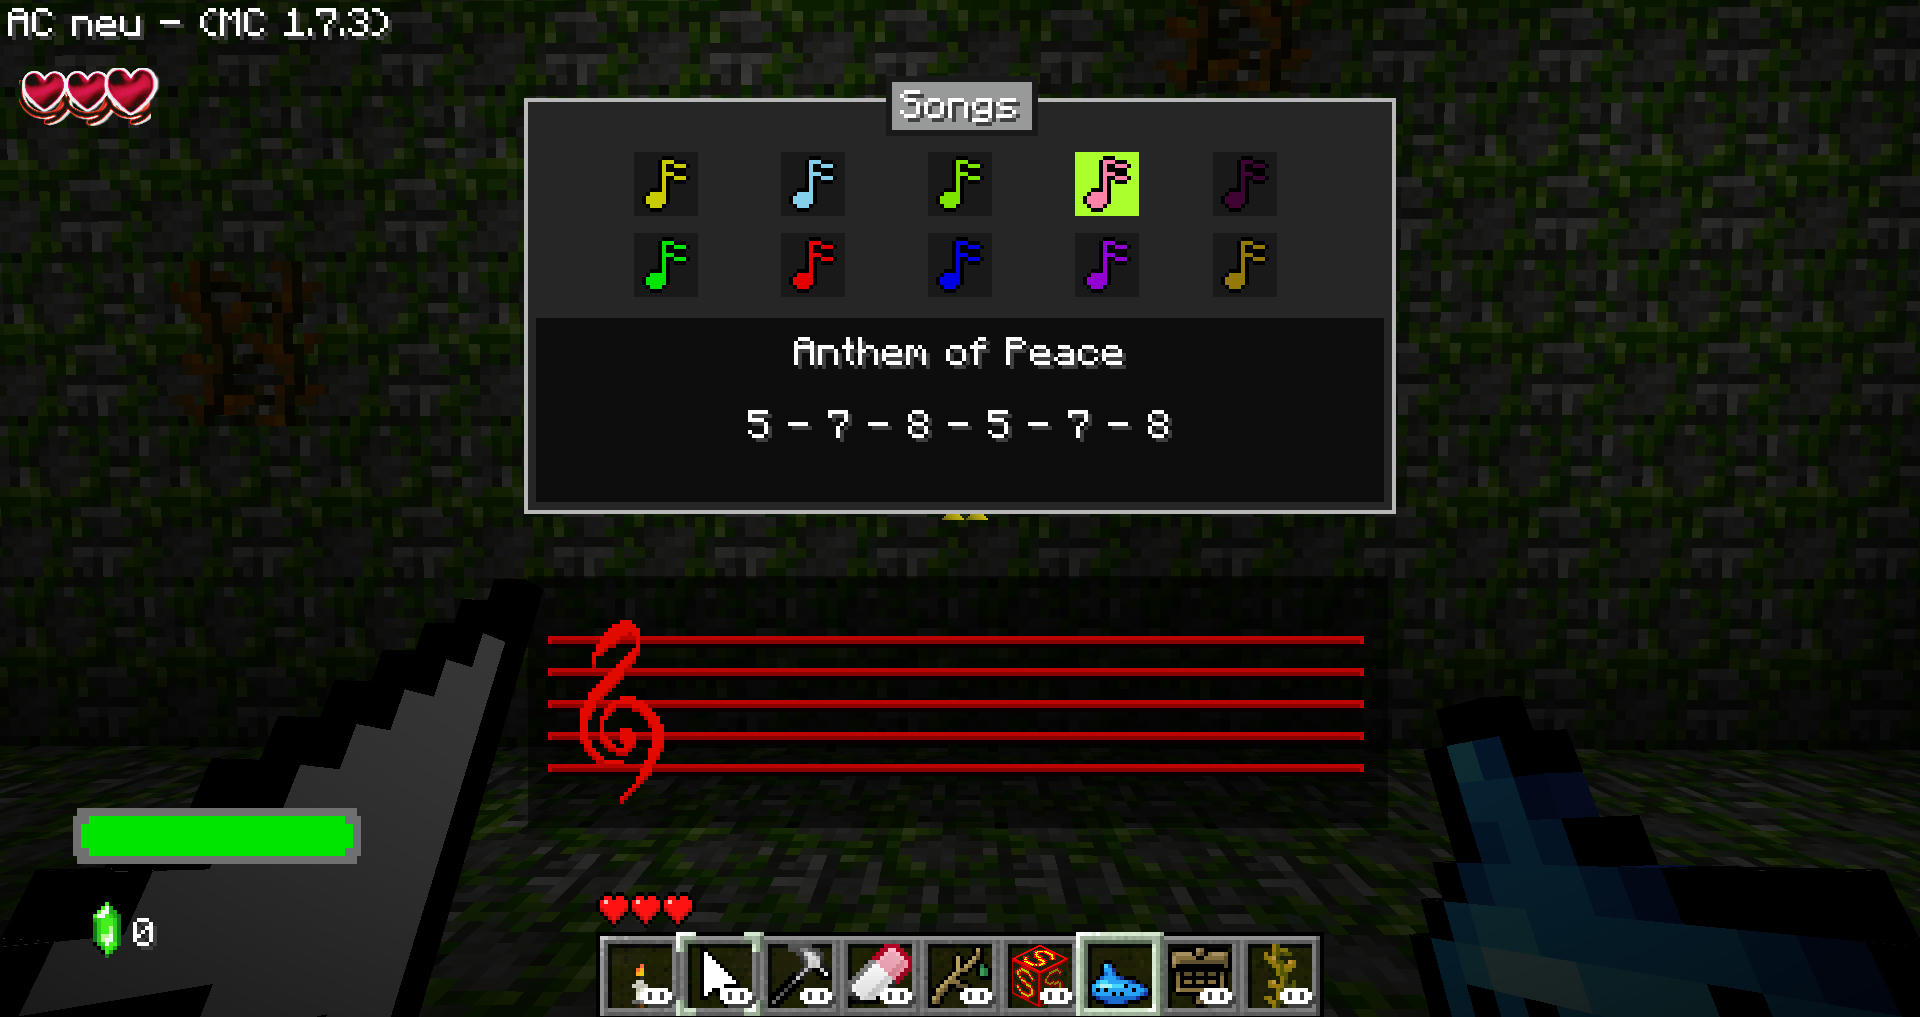 Song Gui